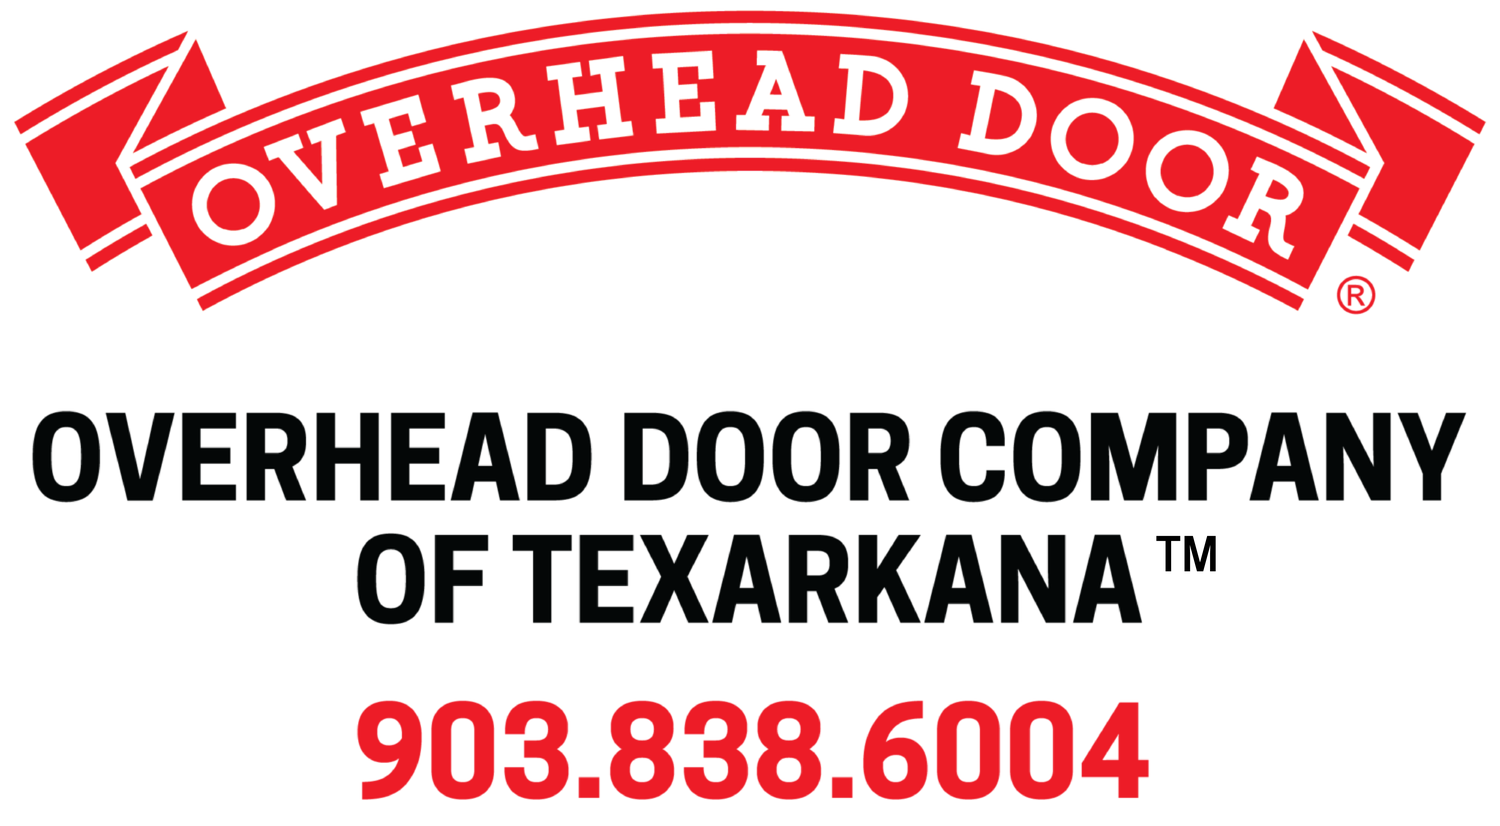 Overhead Door Company of Texarkana ™